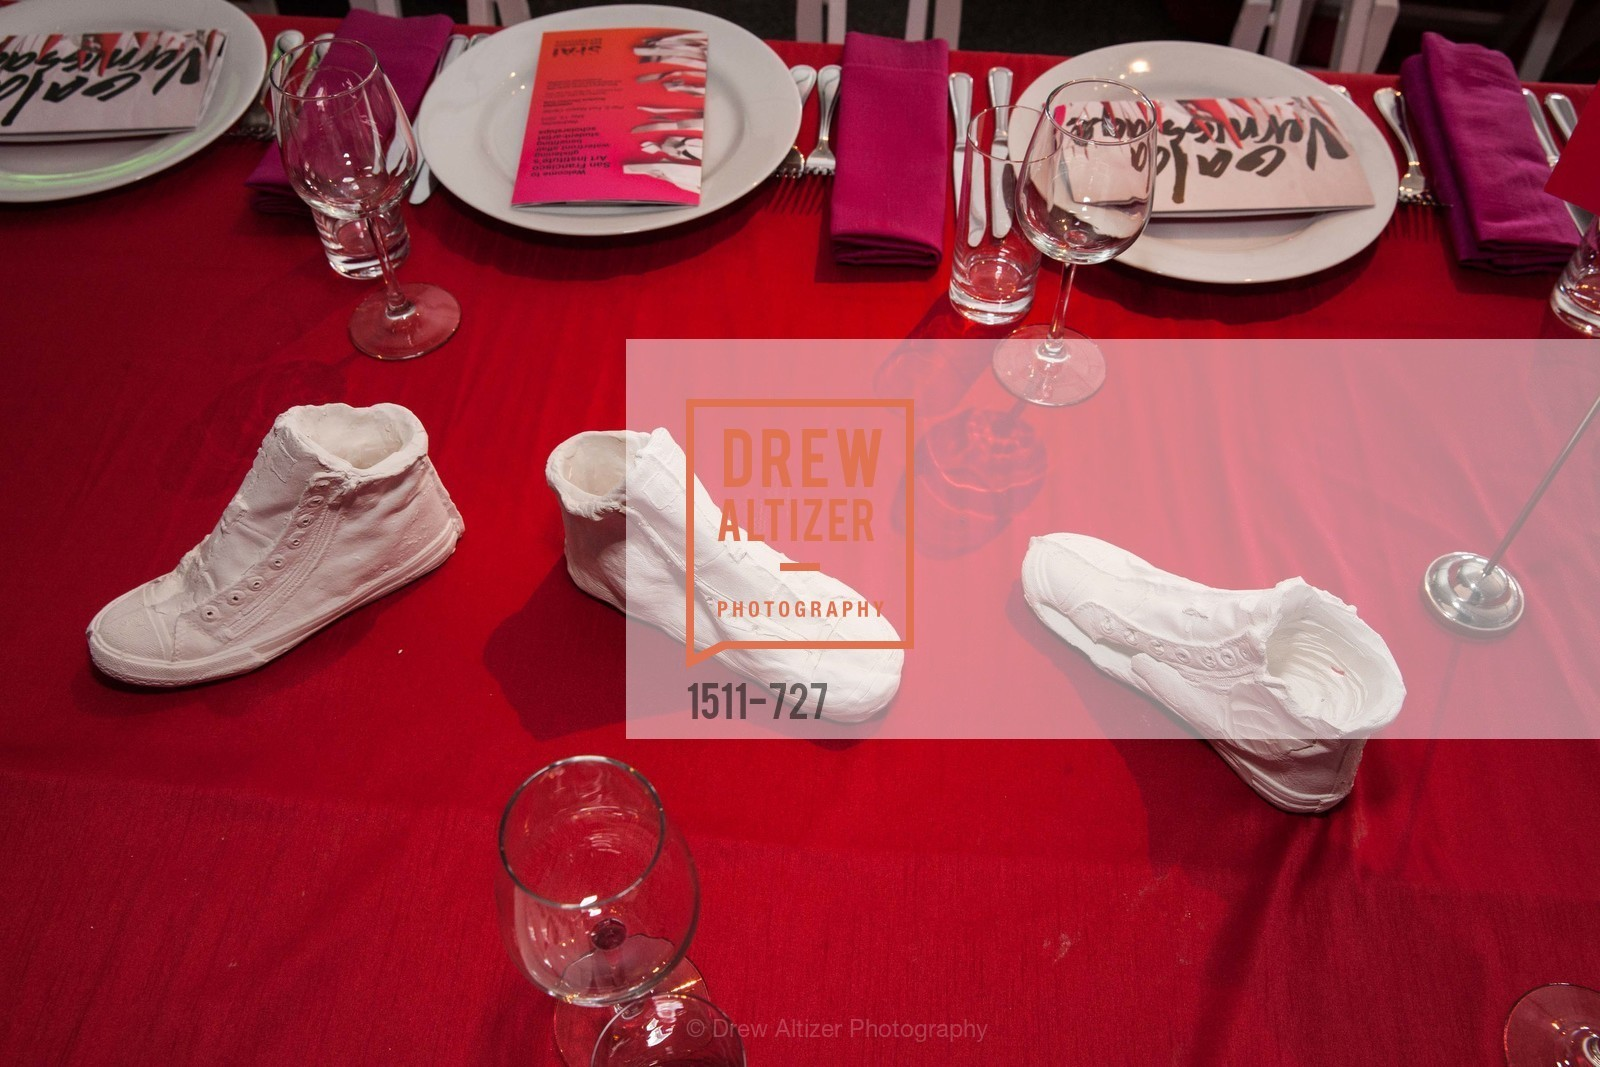 Atmosphere, SAN FRANCISCO ART INSTITUTE Gala Honoring Art Visionary and Advocate ROSELYNE CHROMAN SWIG, US, May 13th, 2015,Drew Altizer, Drew Altizer Photography, full-service agency, private events, San Francisco photographer, photographer california